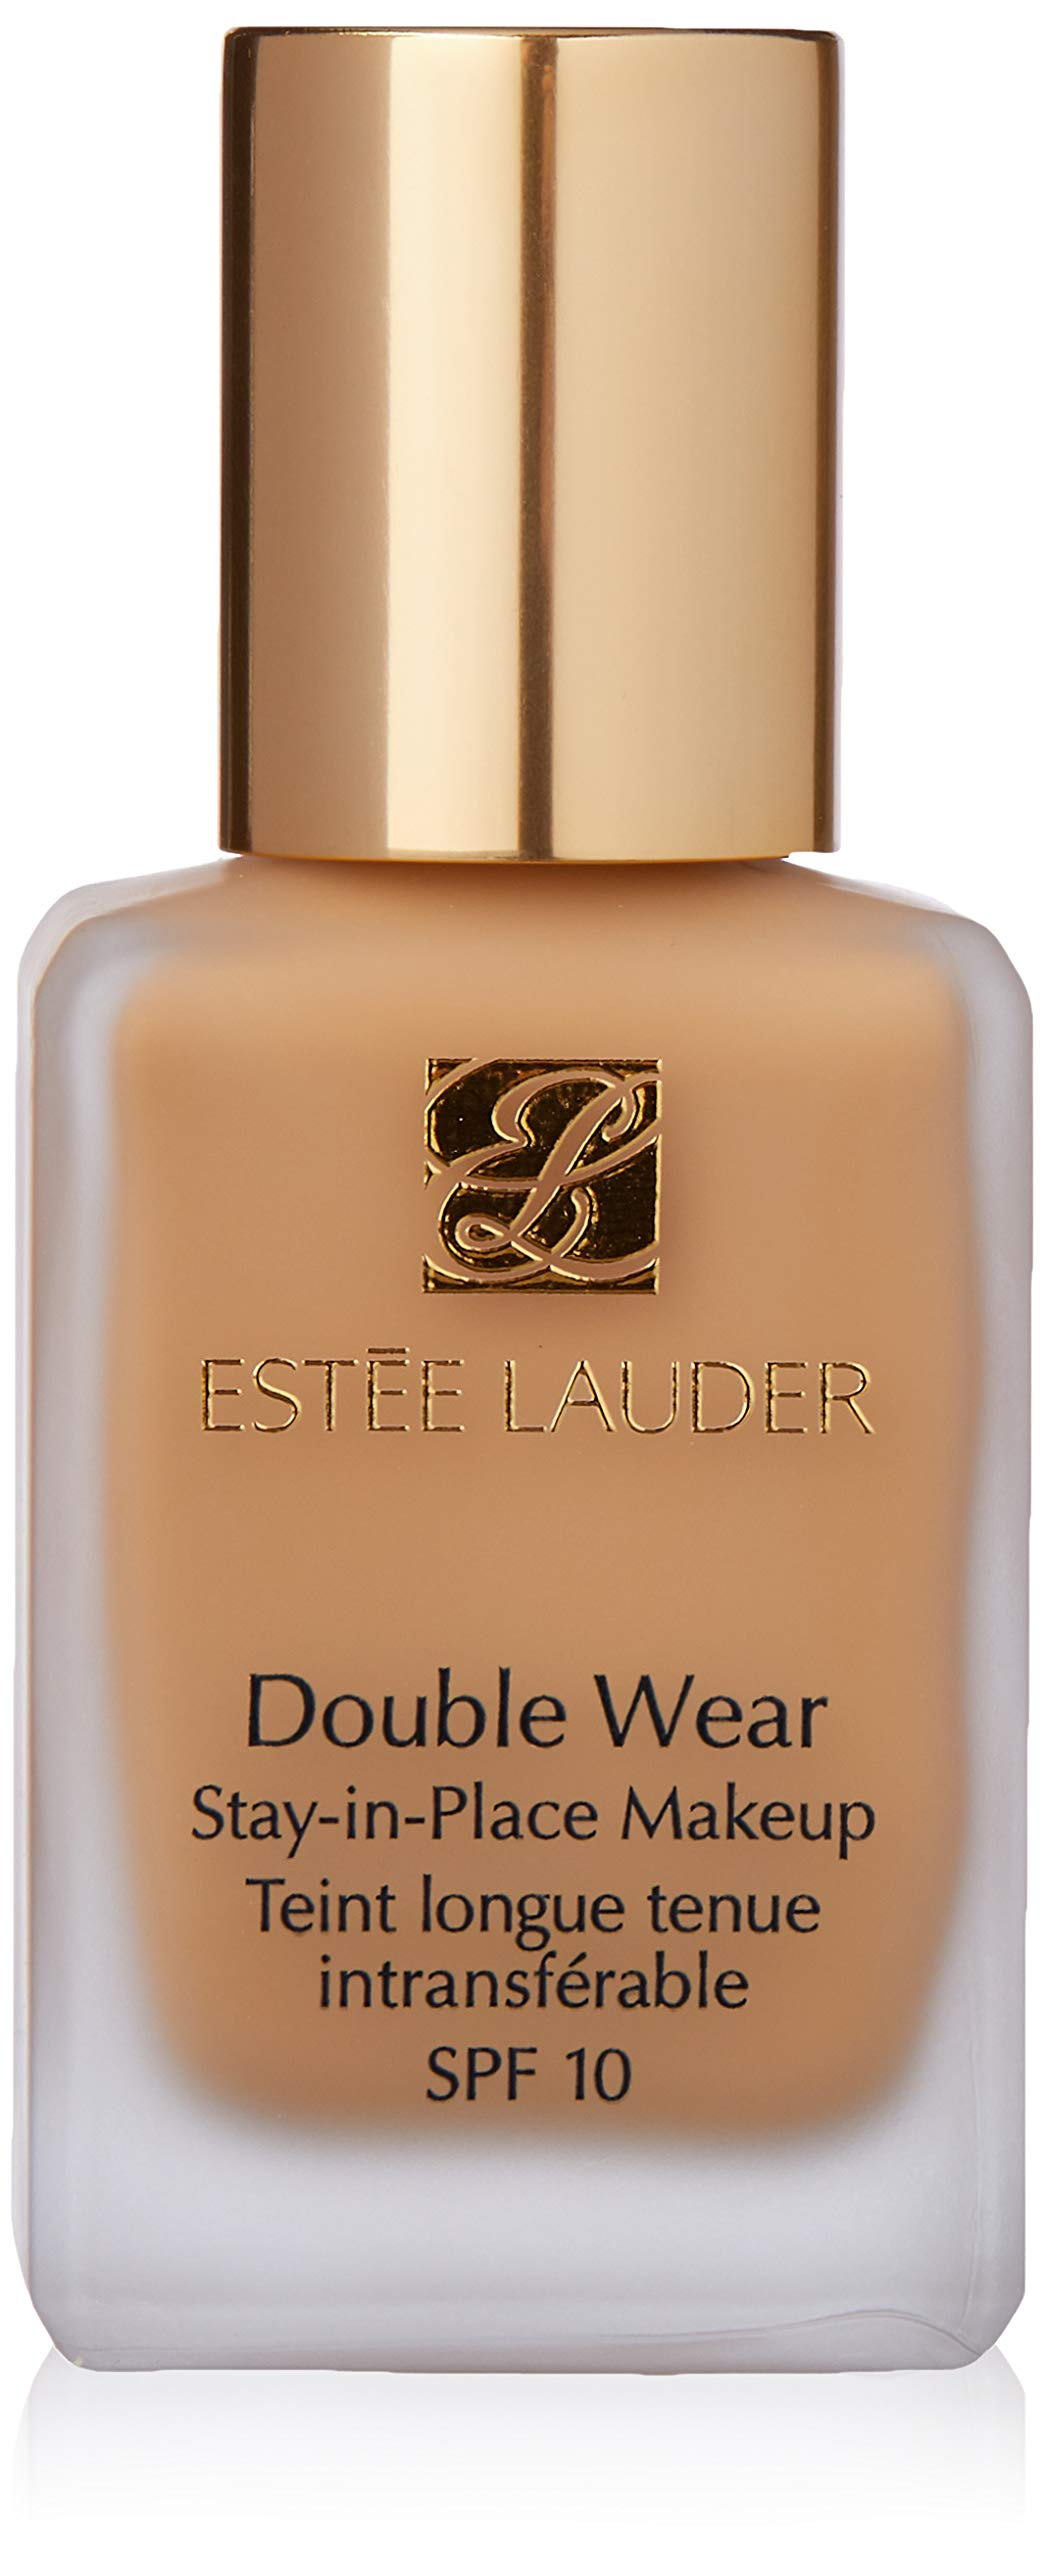 Estee Lauder Double Wear Stay-in-Place Makeup SPF 10 3w1 Tawny, 1.0 Ounce